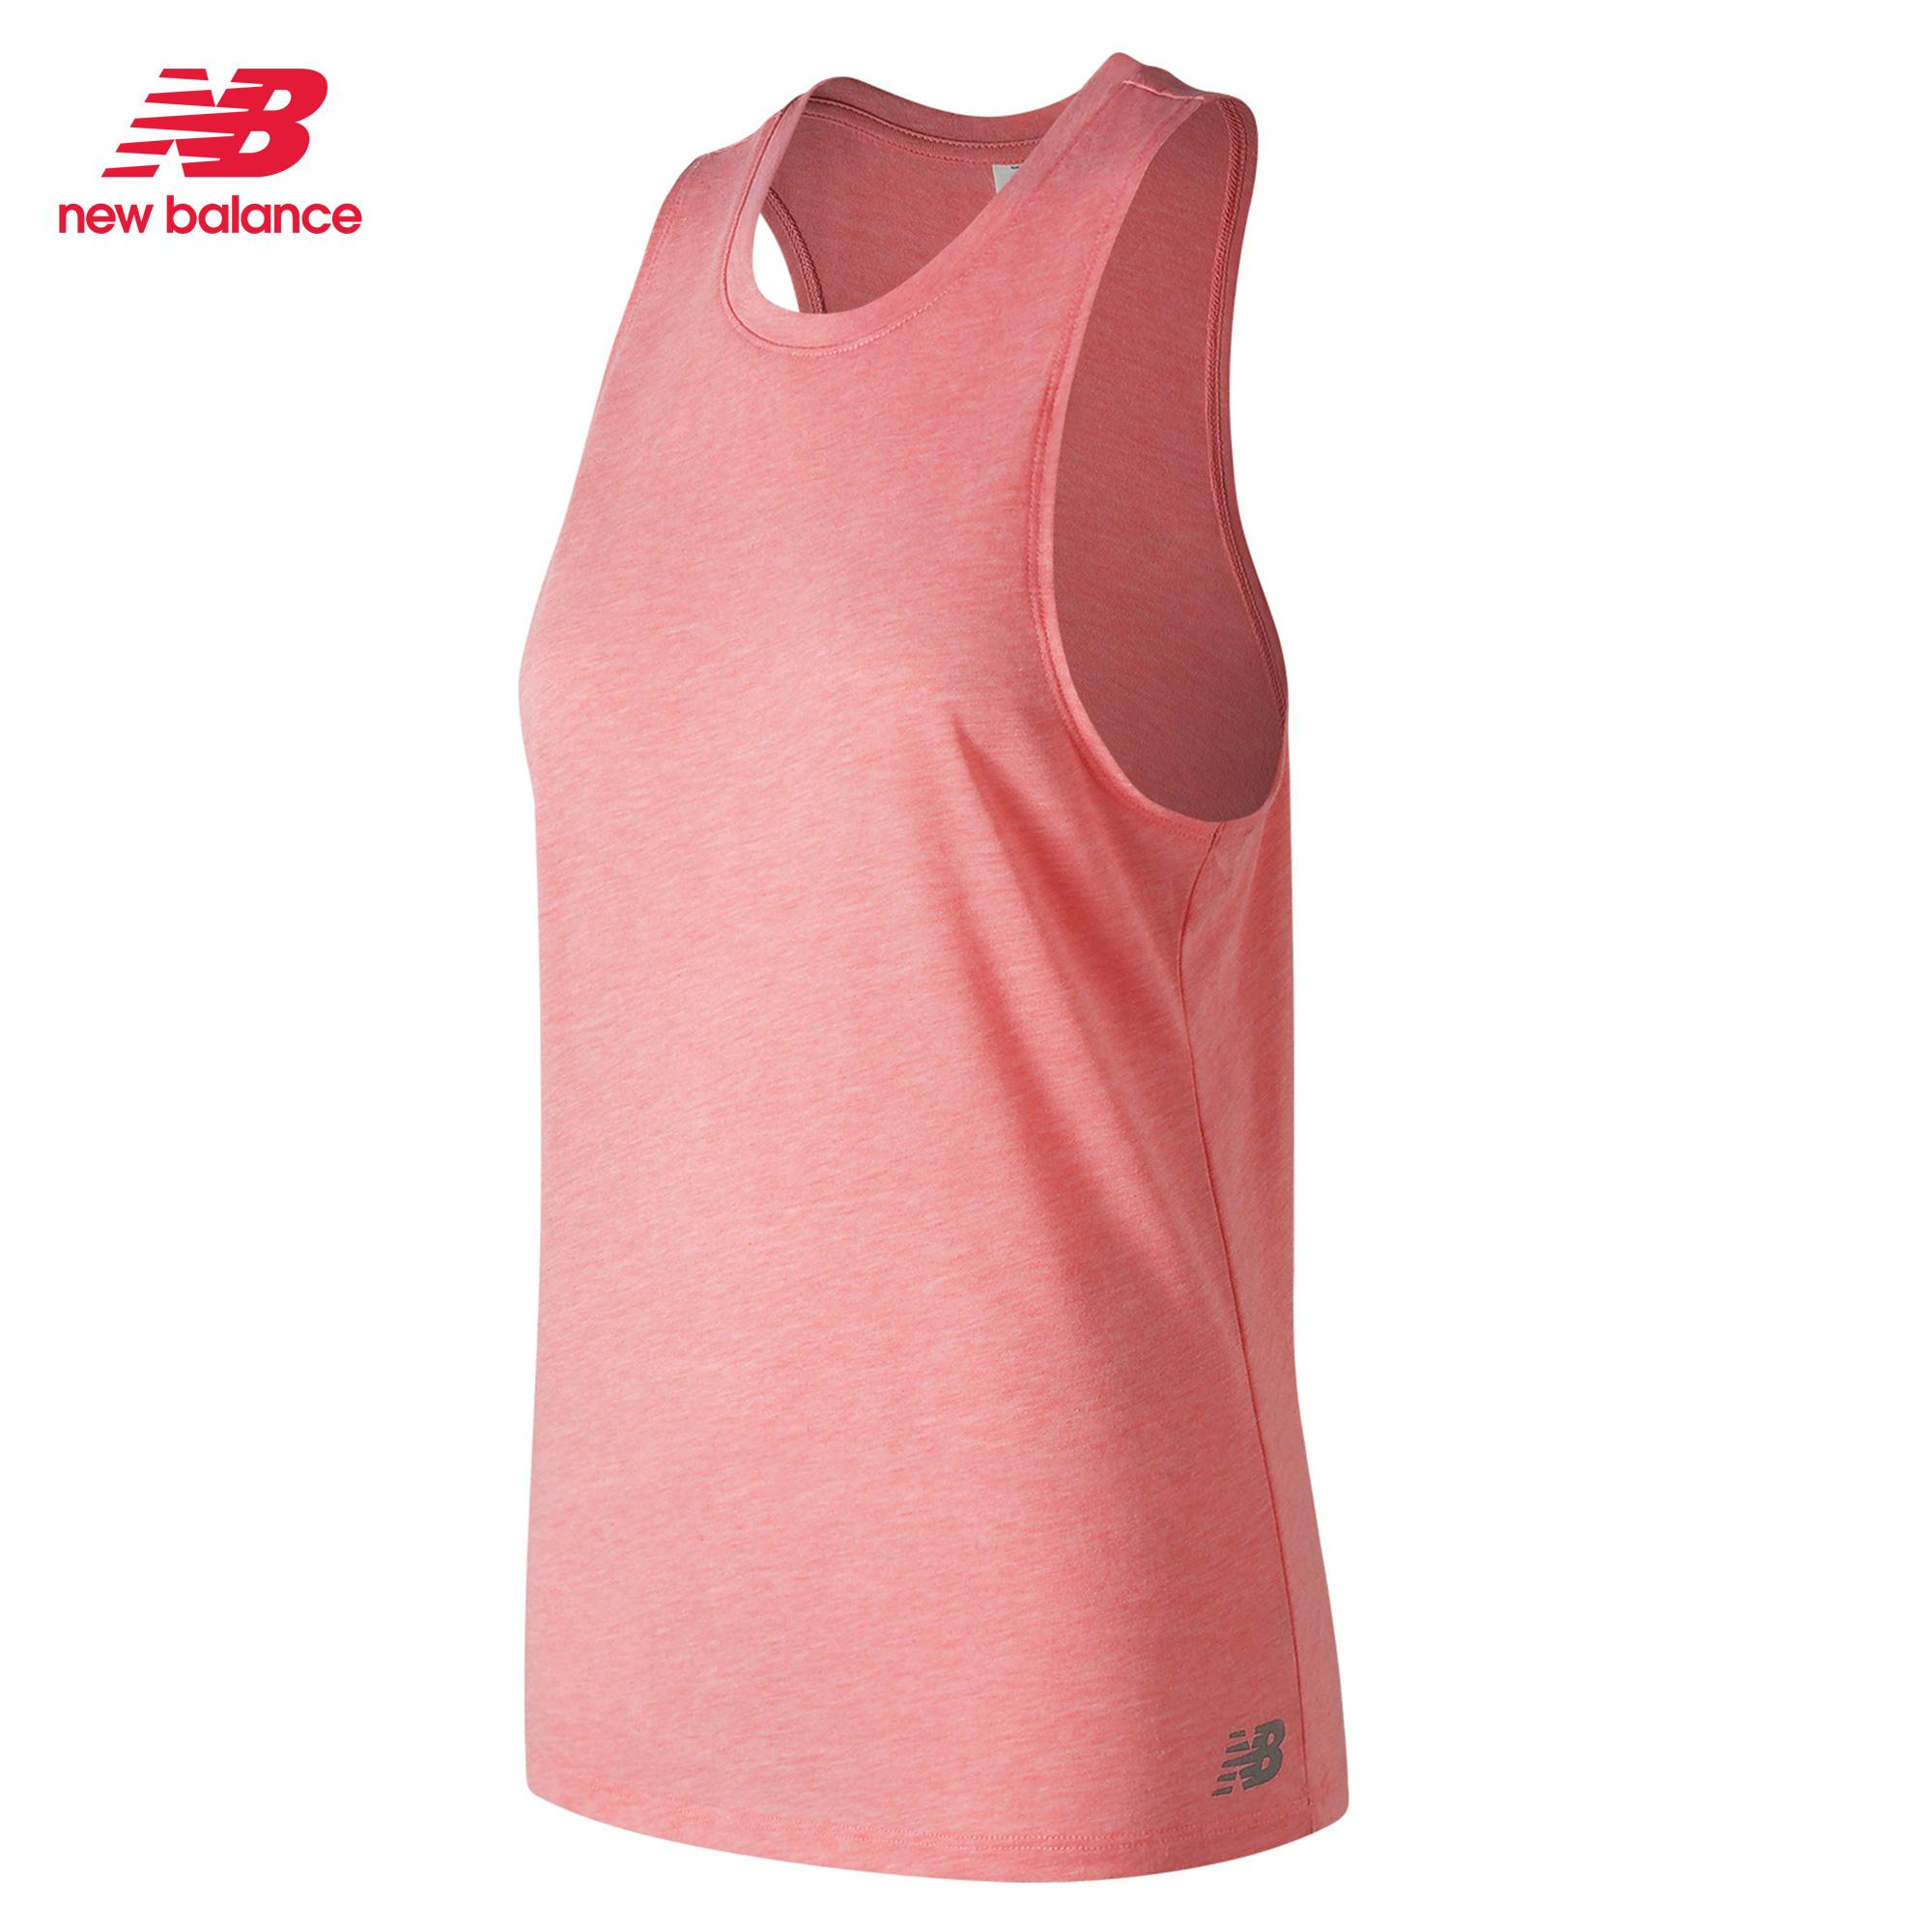 d1aada5a66810 Sports Tops for Women for sale - Sports Shirts for Women Online ...